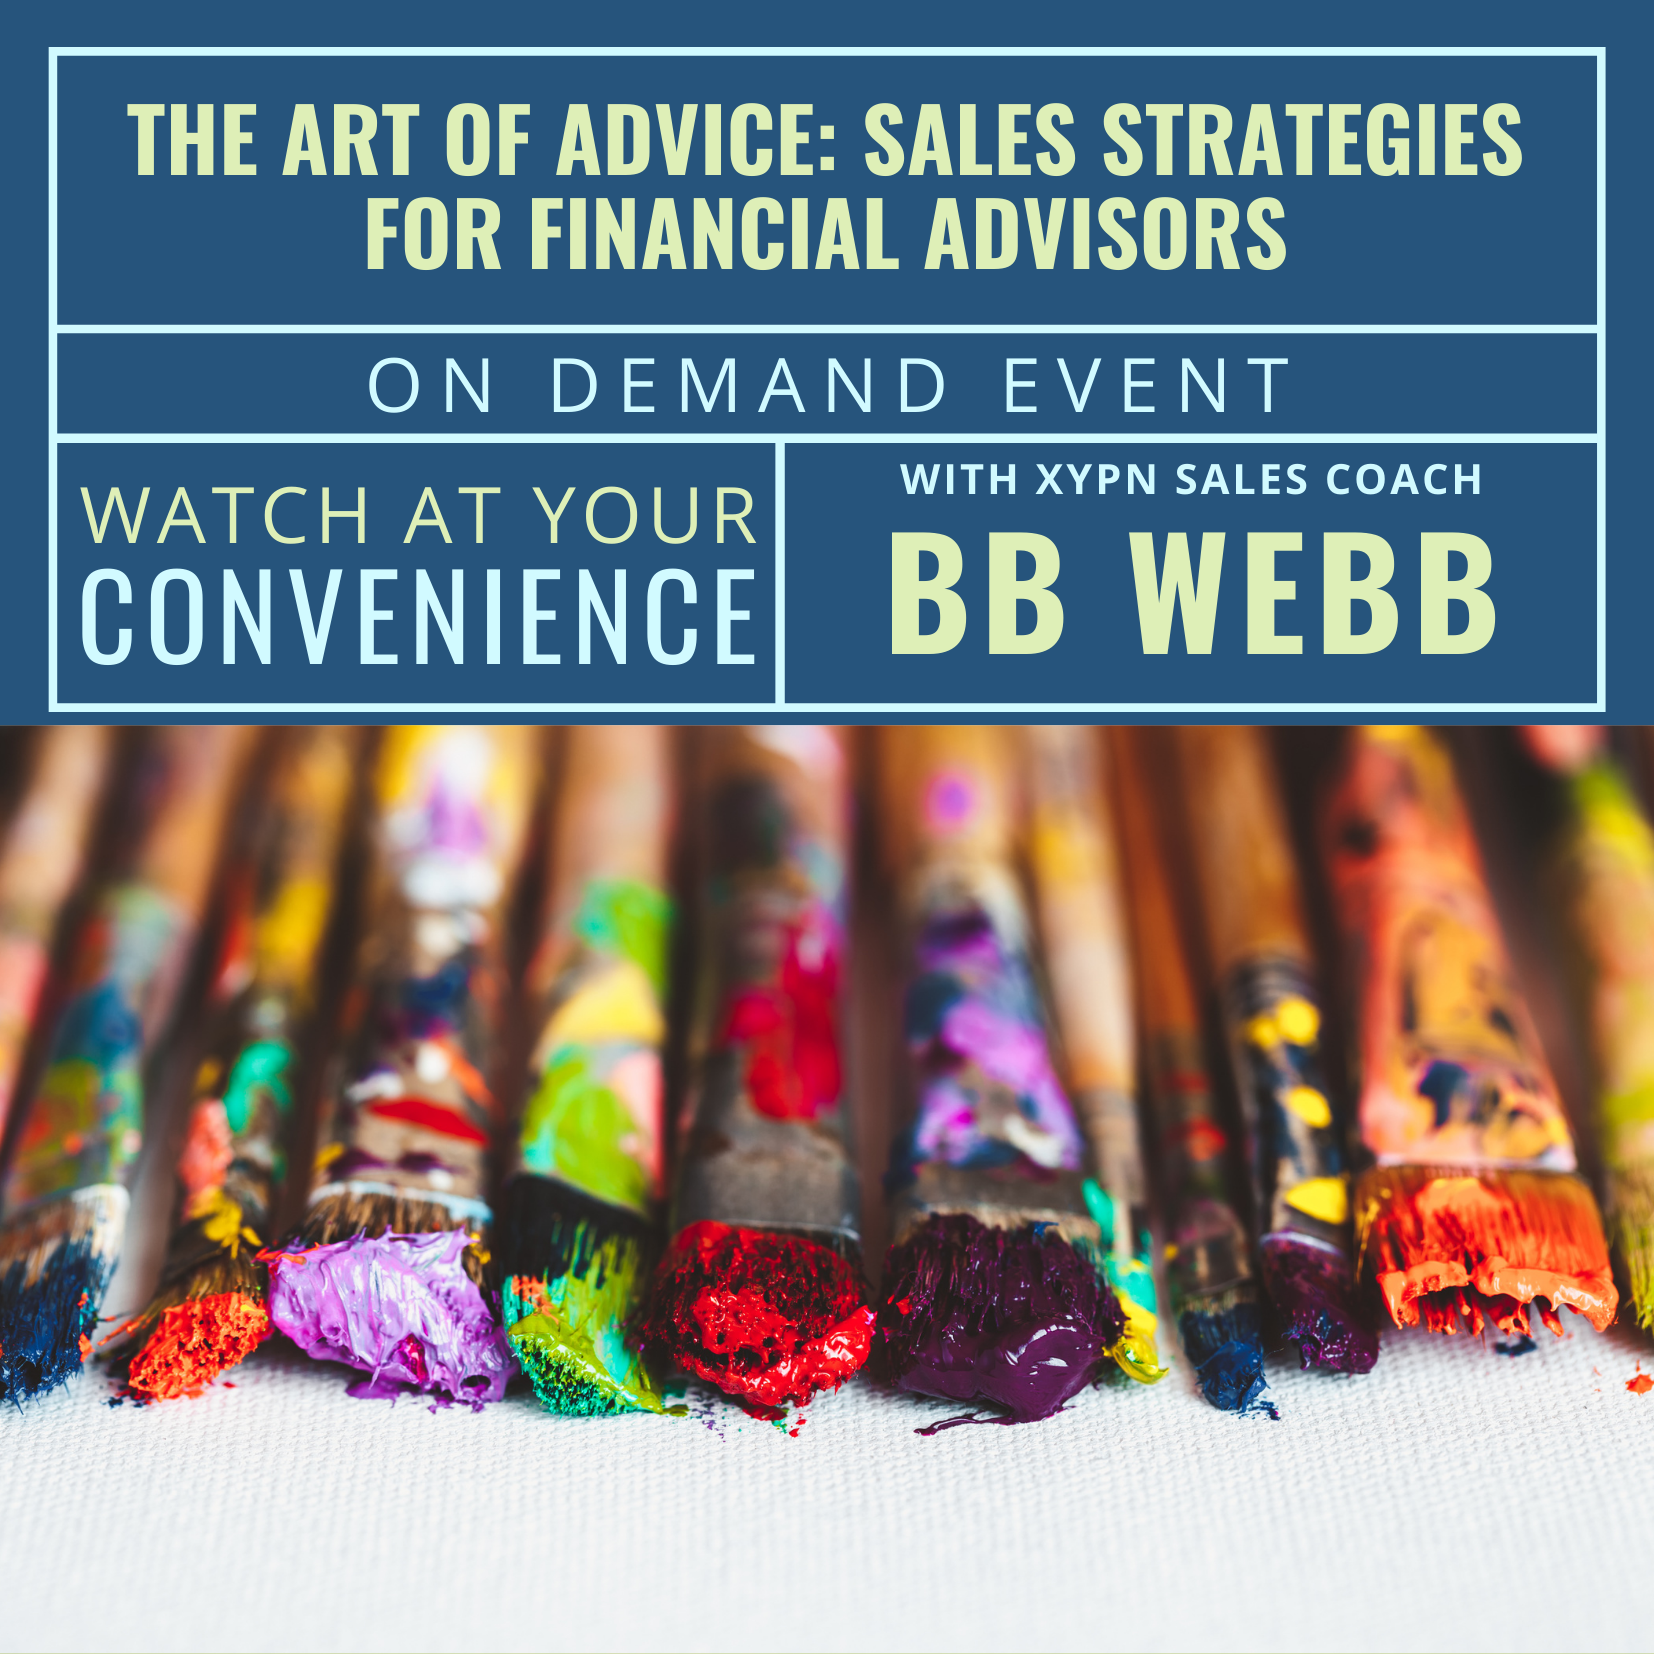 The Art of Advice: Sales Strategies for Financial Advisors